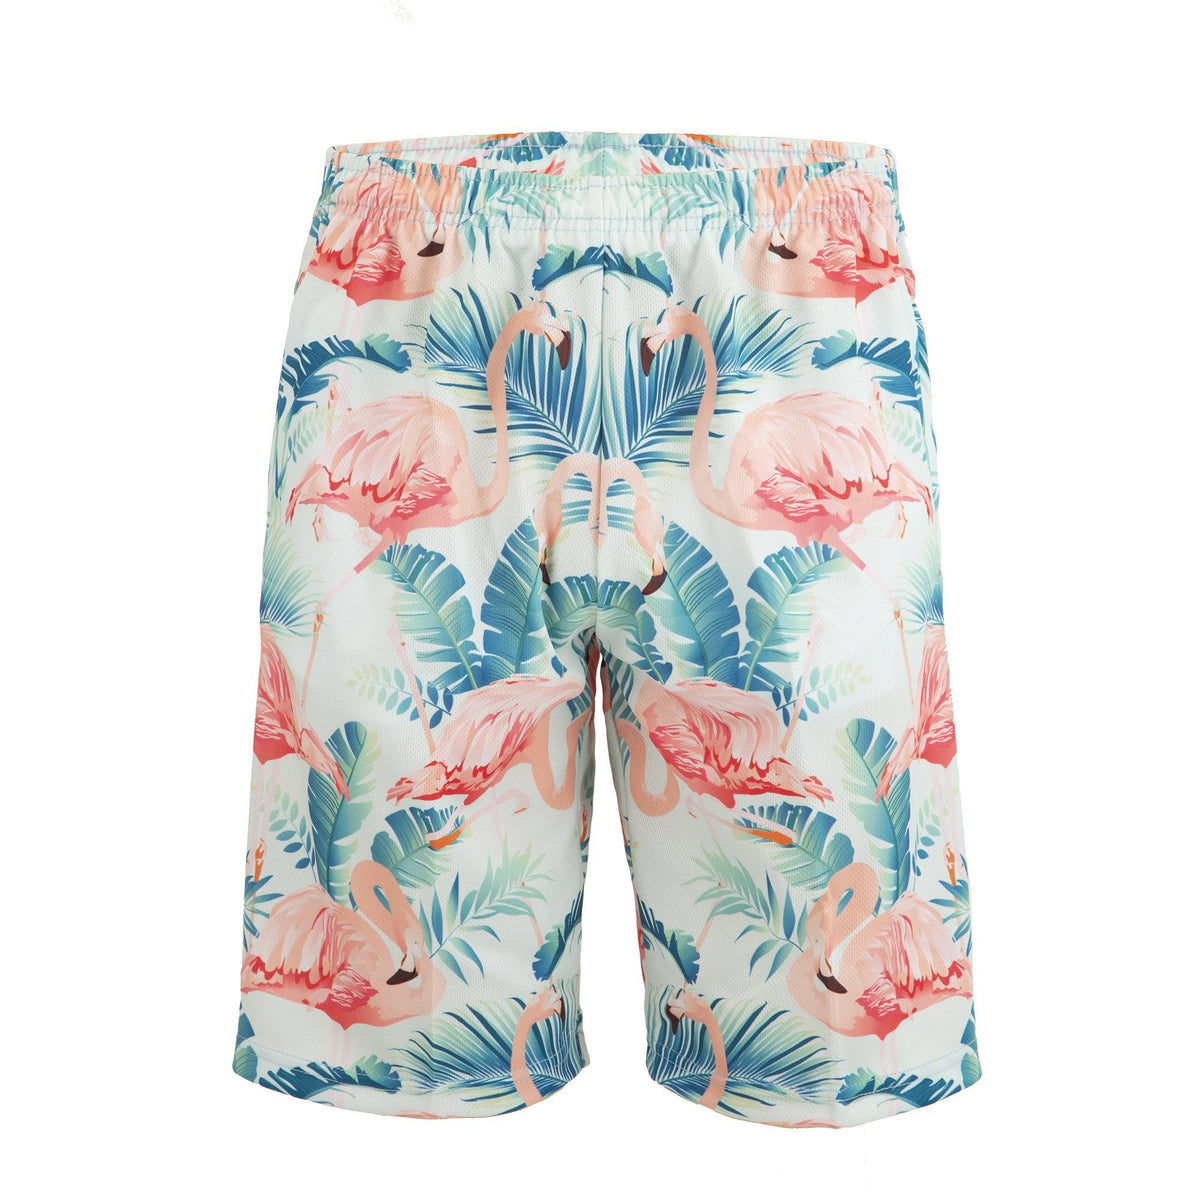 flamingo lacrosse shorts